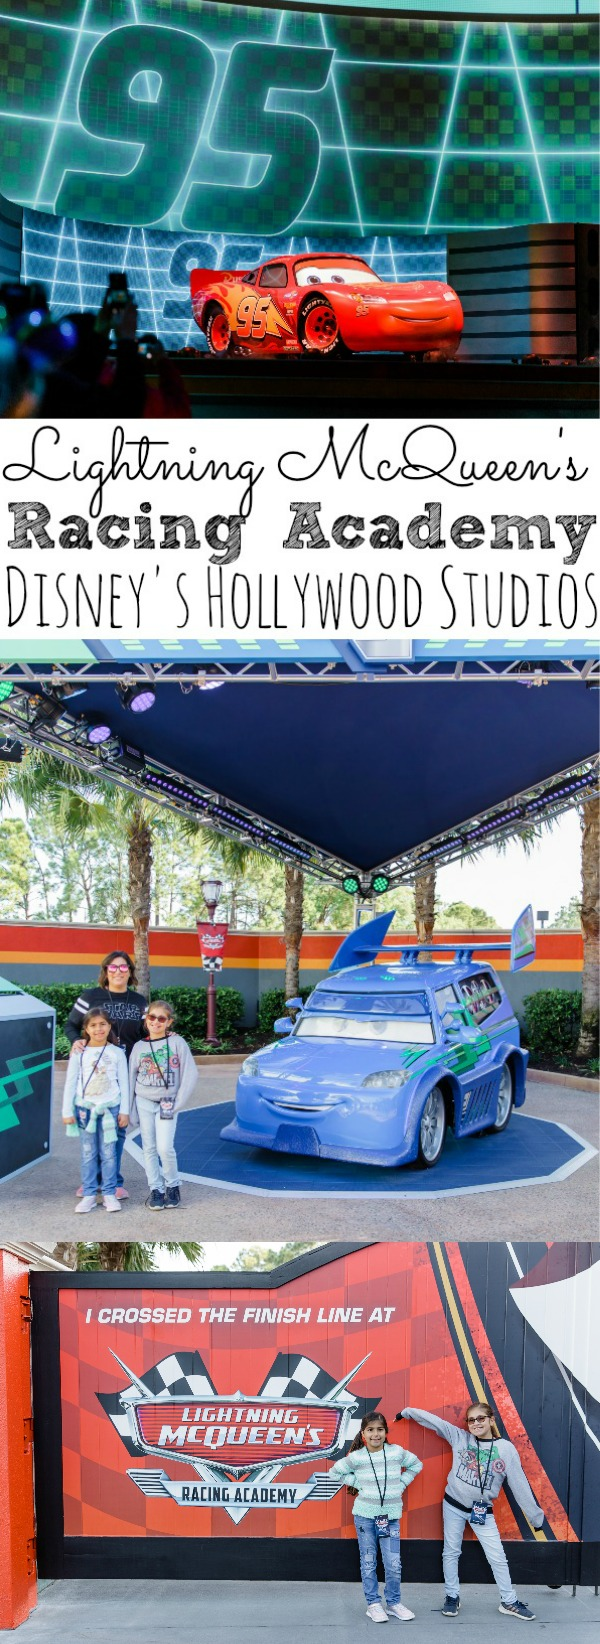 Disney's Hollywood Studios Lightning McQueen's Racing Academy Review